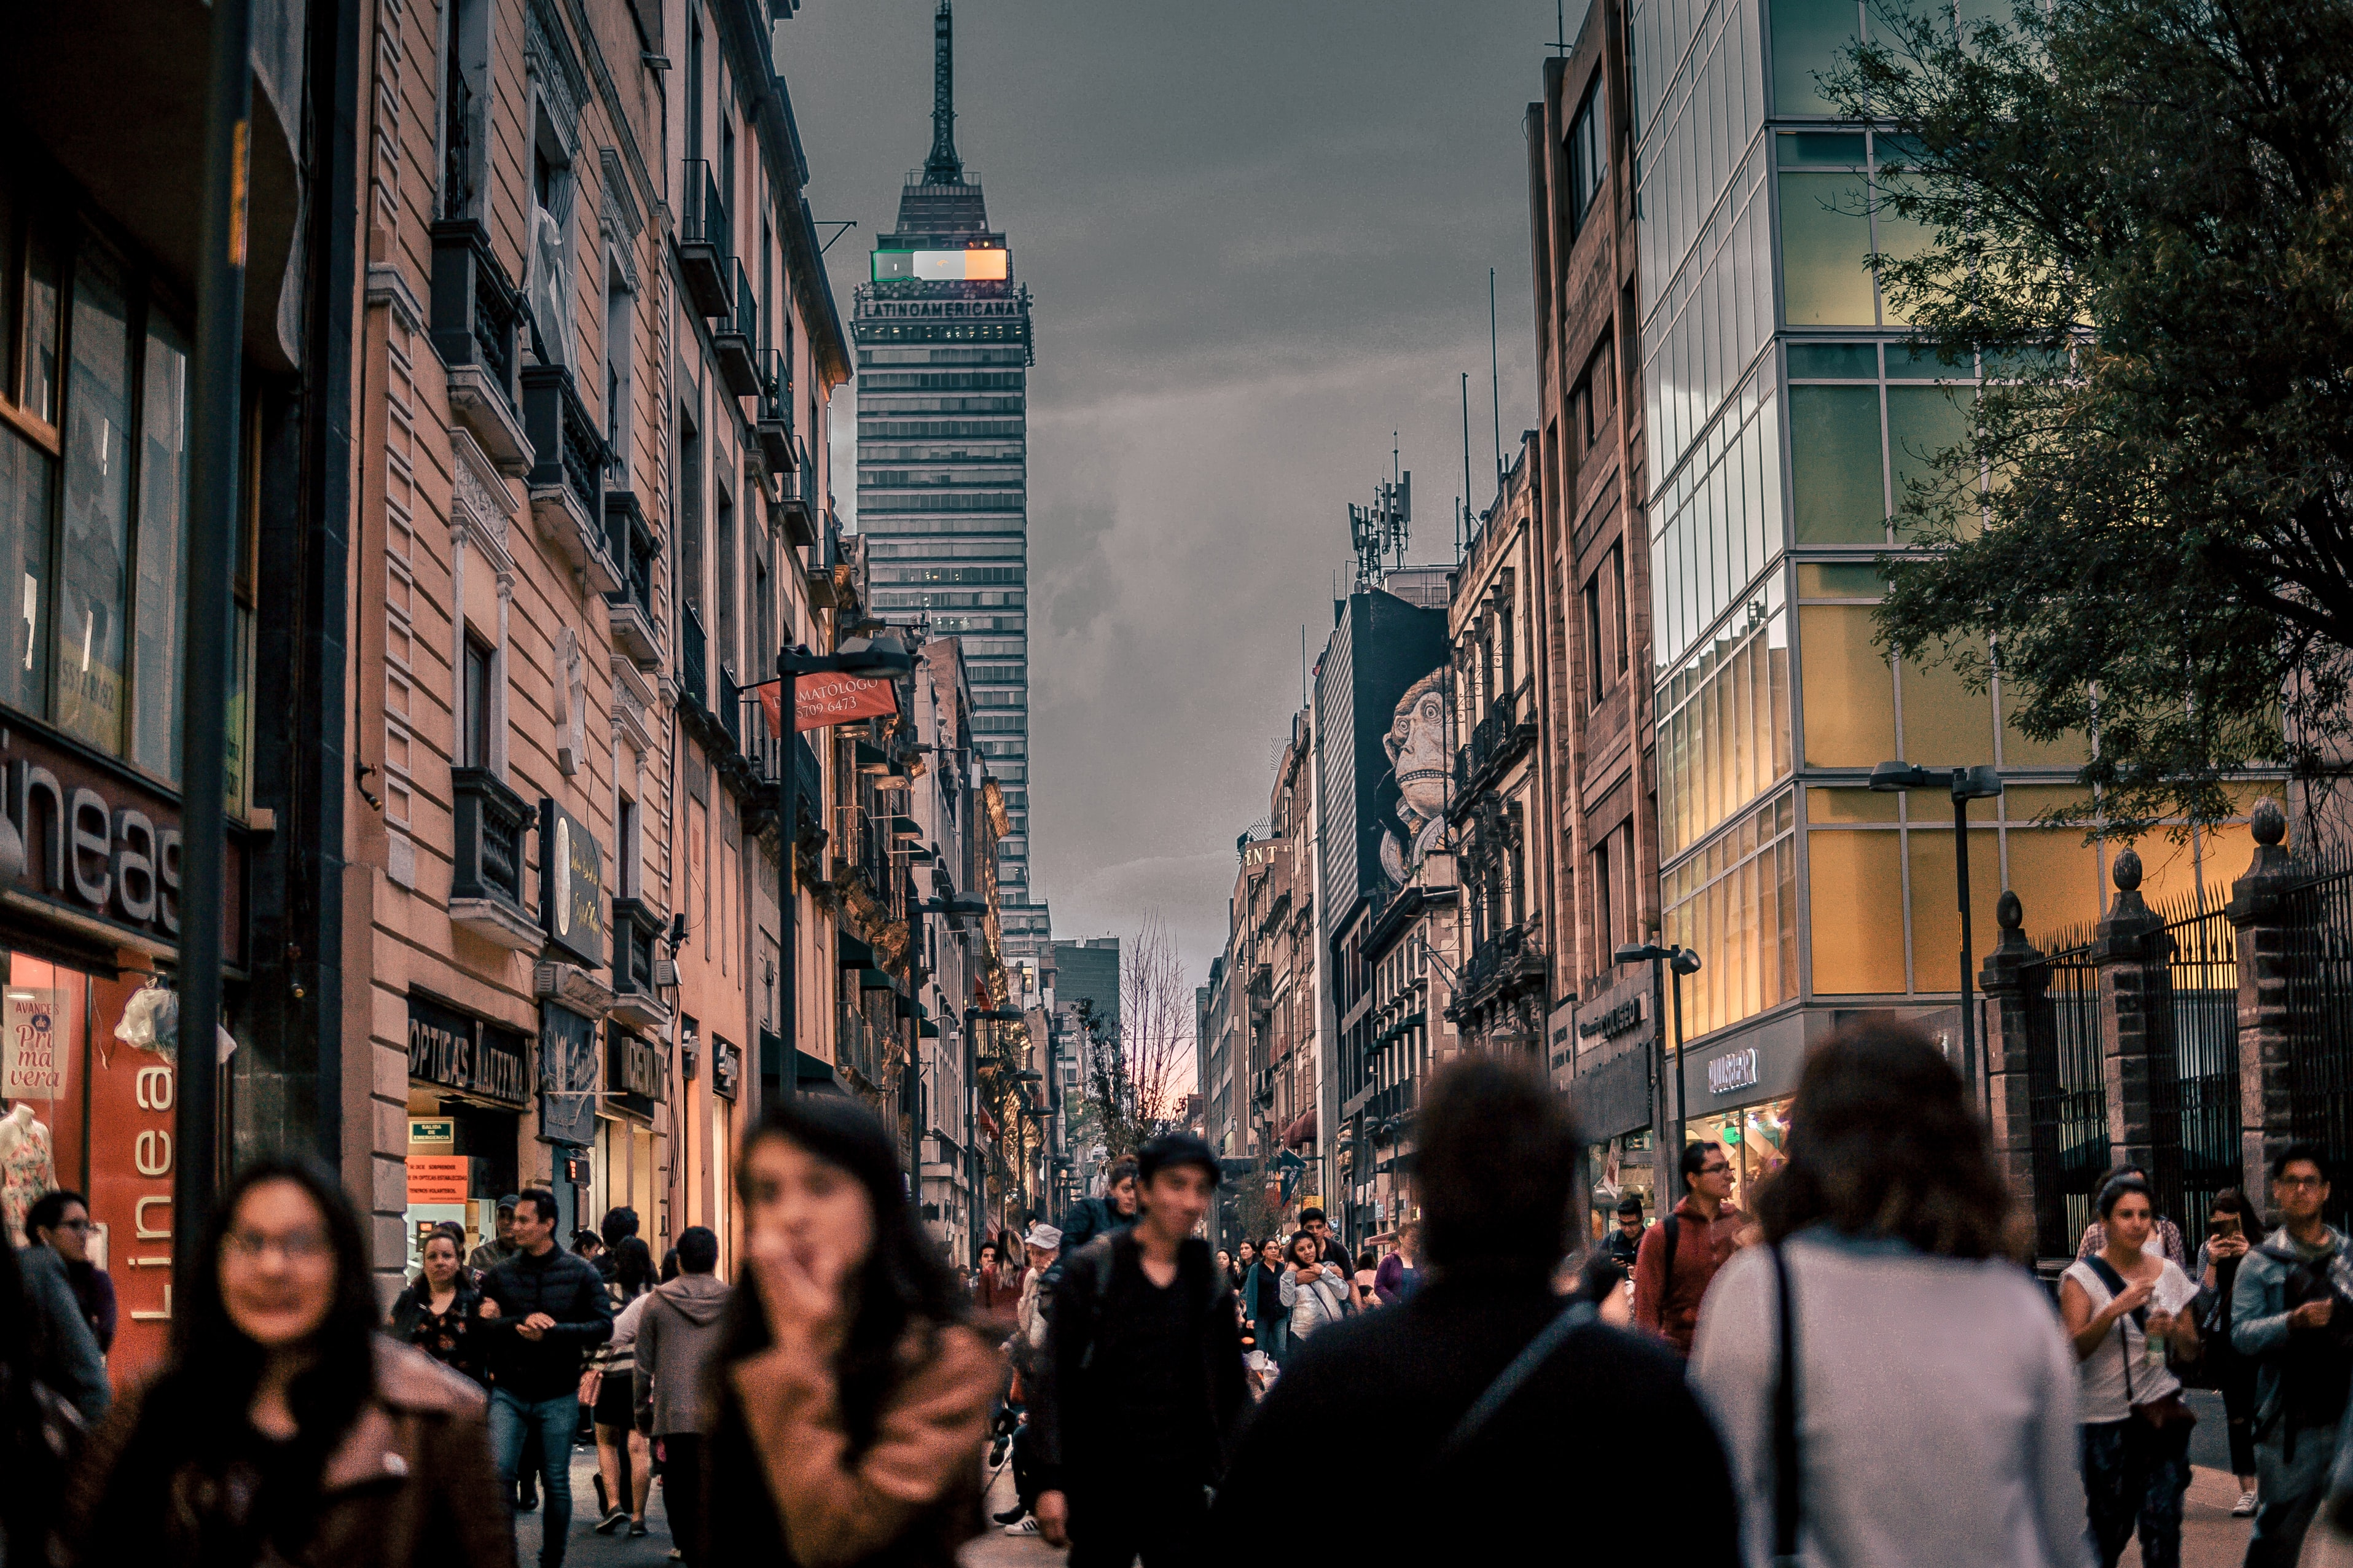 Pedestrians in a shopping street in Mexico City